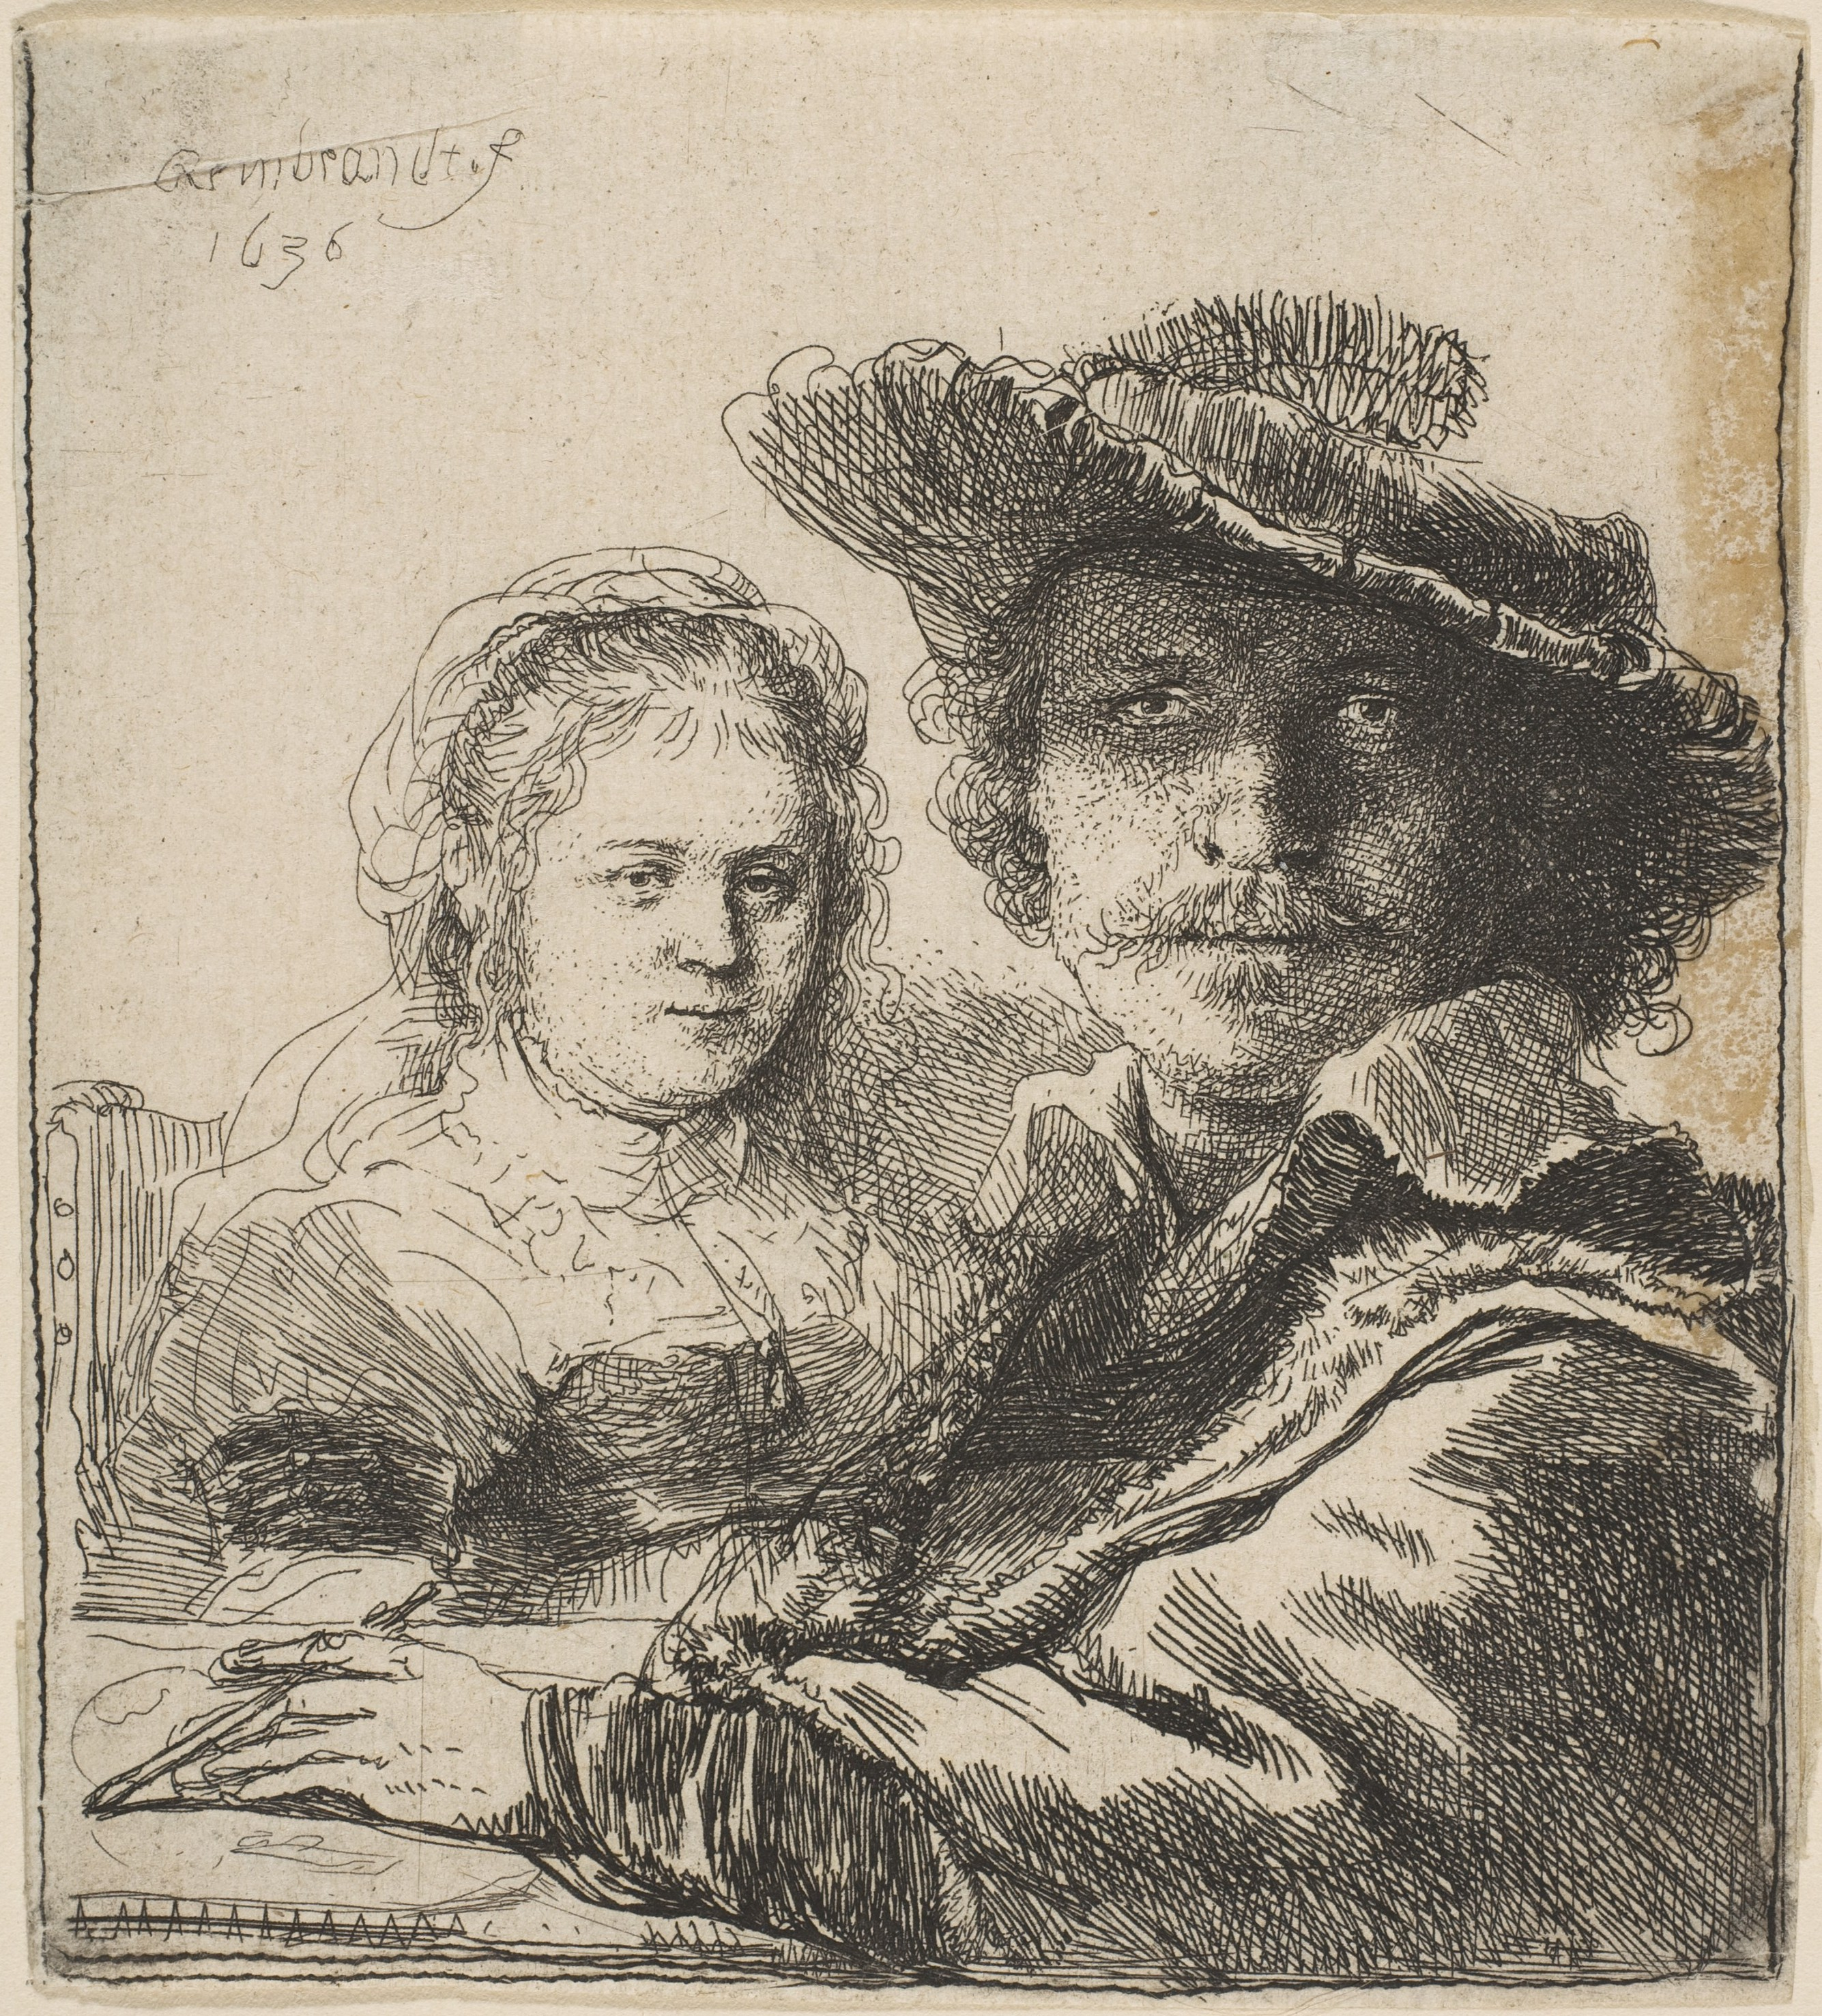 Rembrandt van Rijn (Dutch, 1606–1669), Self-Portrait with Saskia, 1636. Etching. The Metropolitan Museum of Art, Gift of Henry Walters, 1917, 17.37.71.